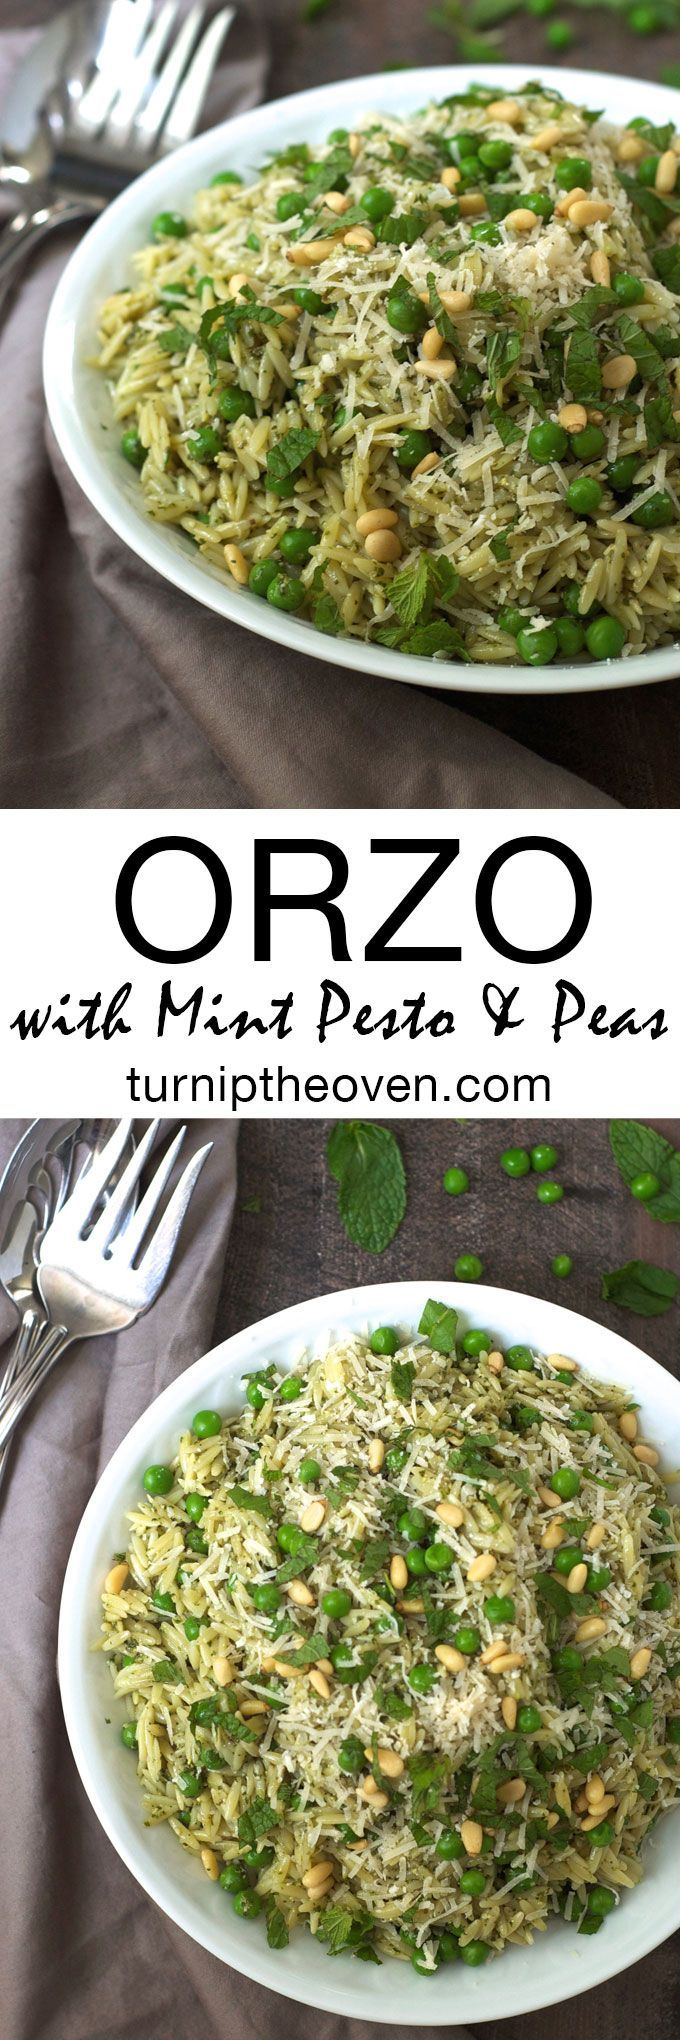 This healthy, fresh orzo with mint pesto and peas is delicious paired with simply prepared chicken or fish. Bursting with the flavors of fresh mint, toasted pine nuts, and Parmesan cheese, it's the perfect side dish!